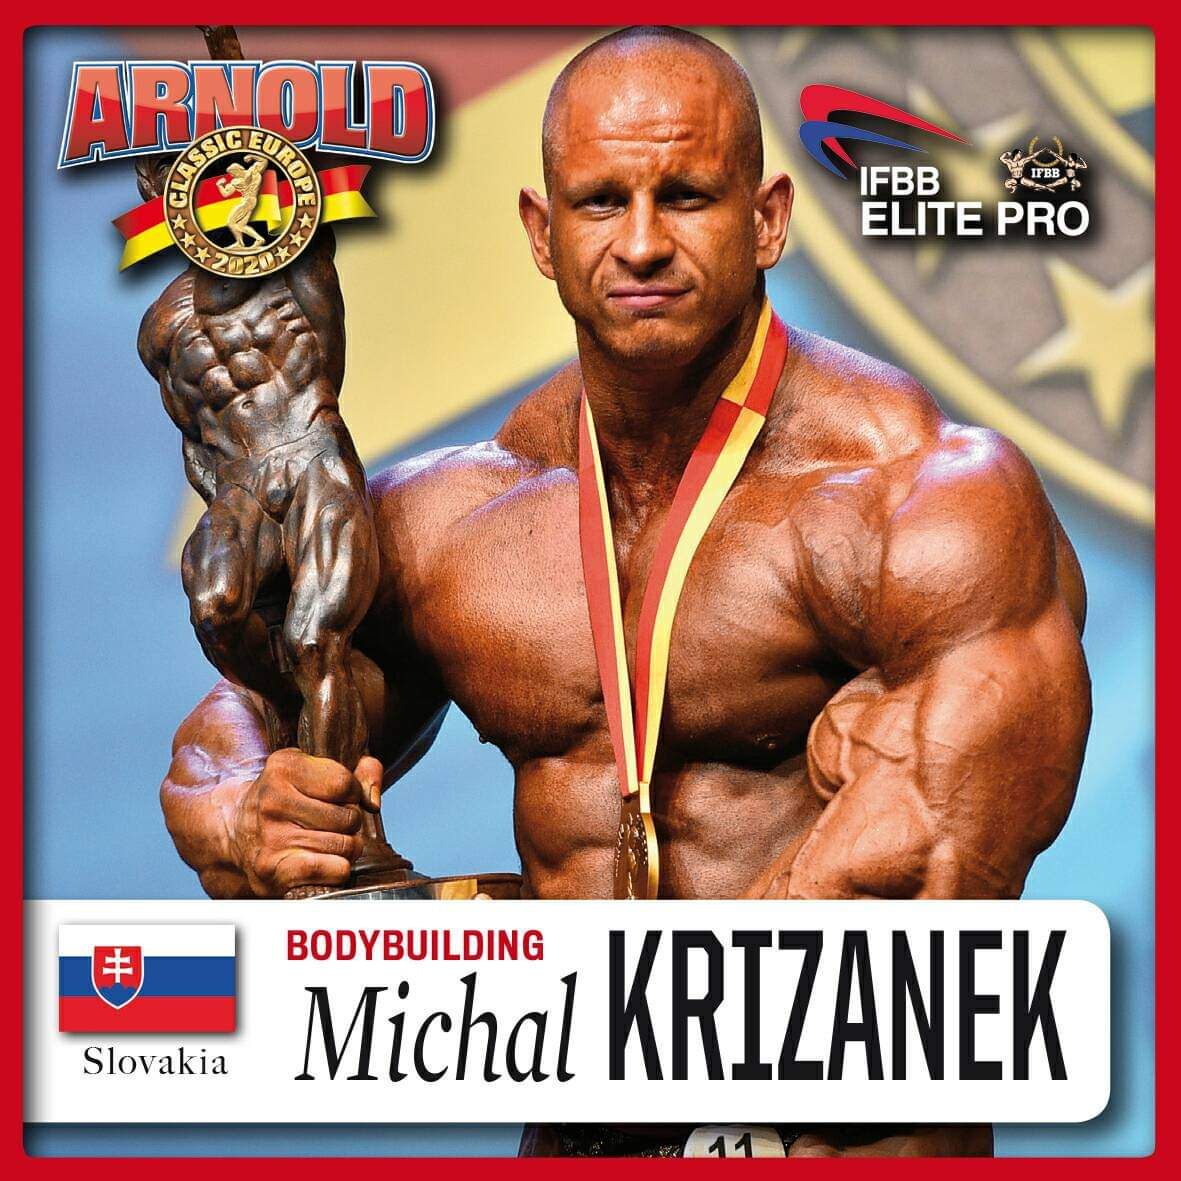 MICHAL KRIZANECK IFBB ELITE PRO parteciperà all'Arnold Classic Europe 2020 ifbb elite pro